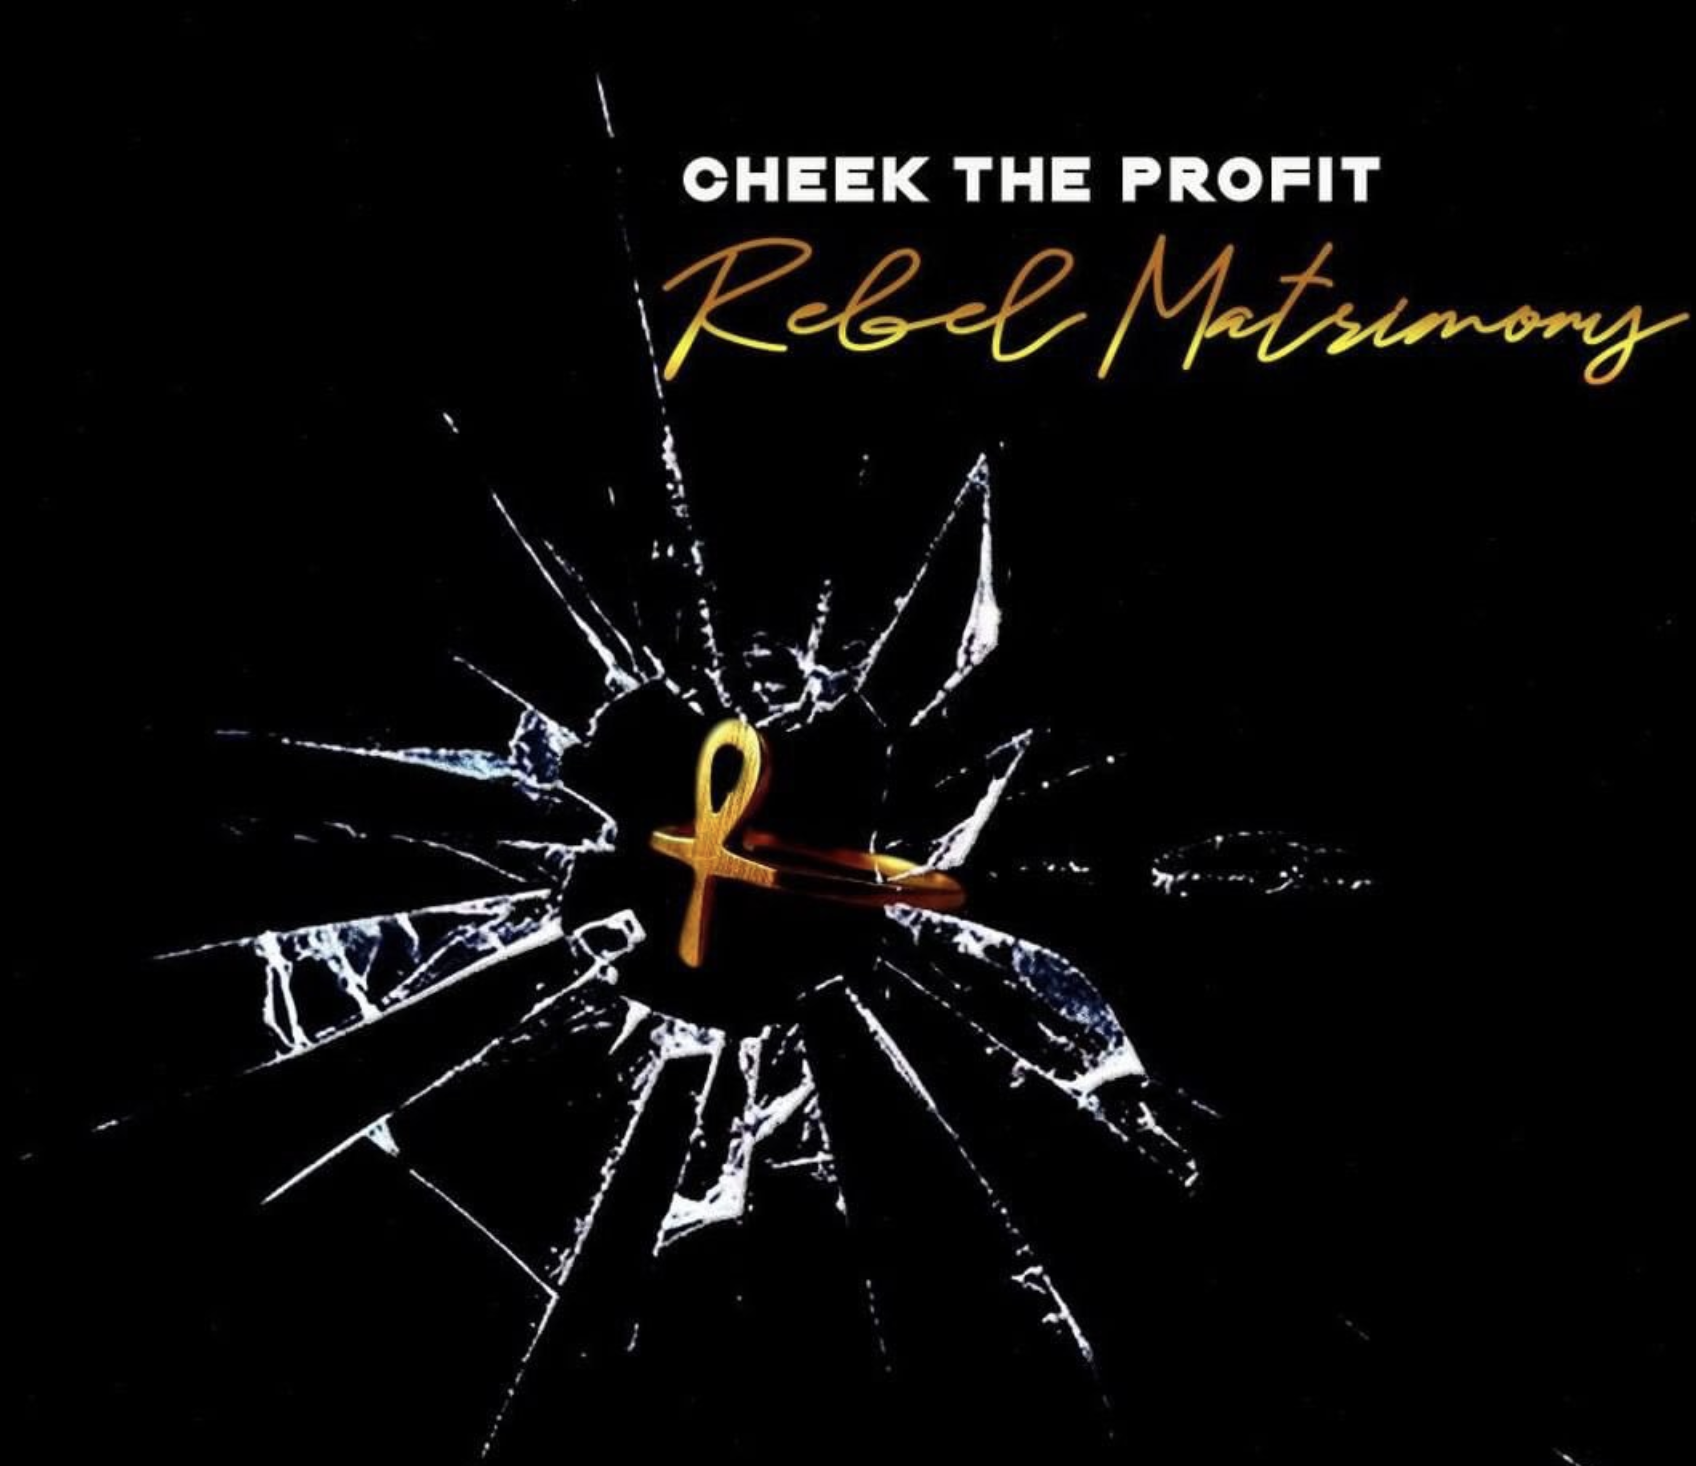 Music cover art for cheek the profit